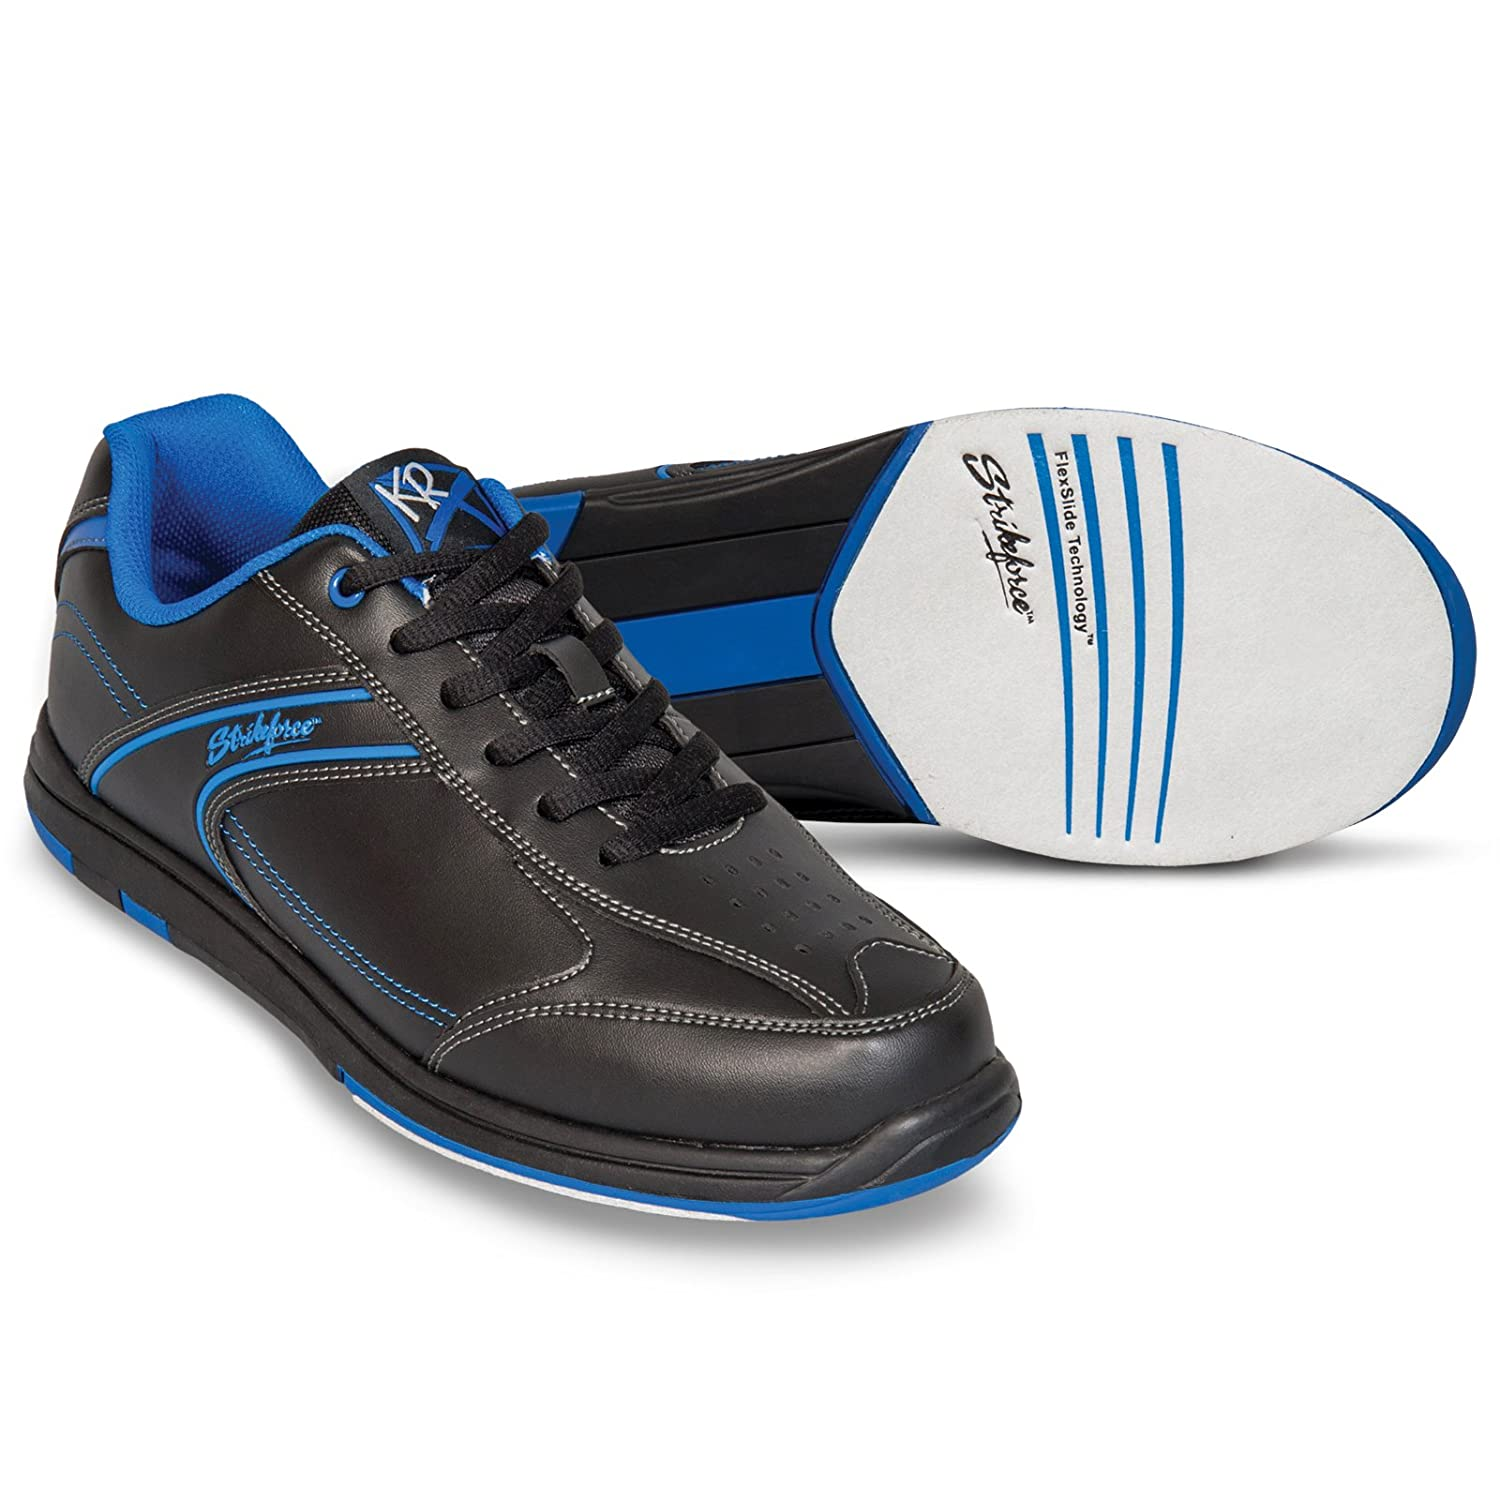 KR Strikeforce M-033-130 Flyer Bowling Shoes, 黒/Mag 青, Size 13